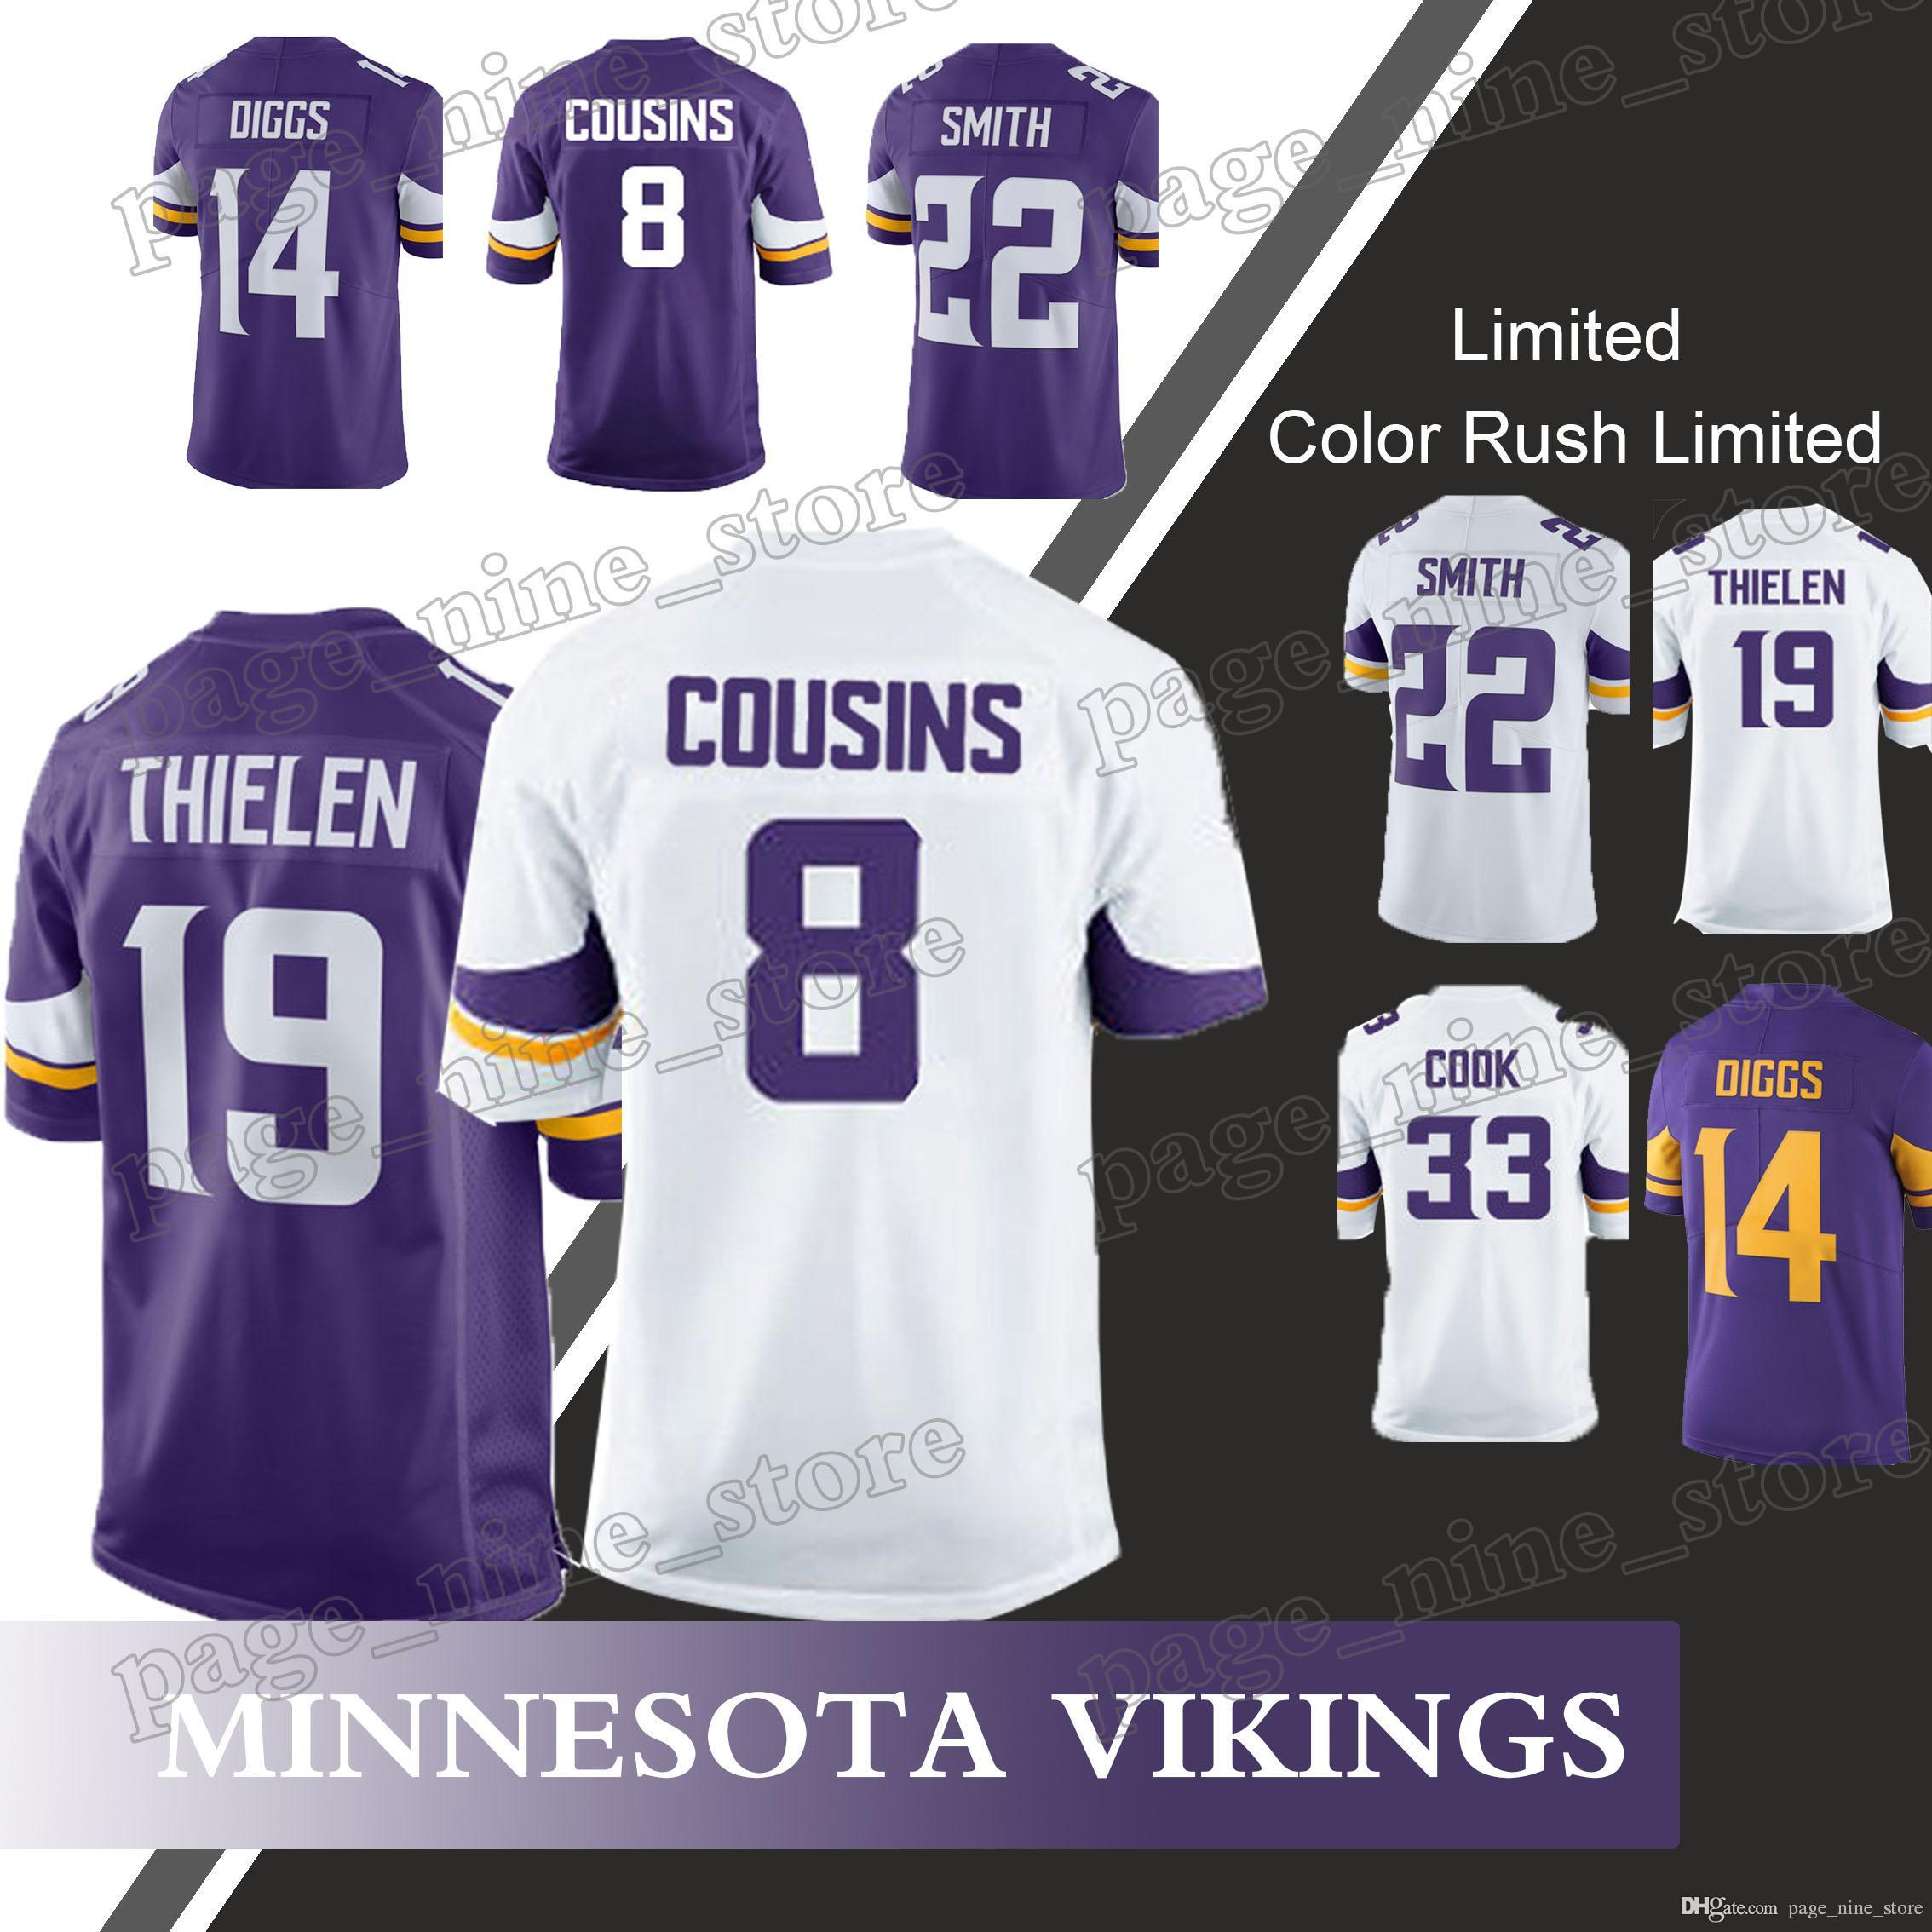 on sale 1b9f2 ca300 sale minnesota vikings jerseys 6fae2 9d0d5